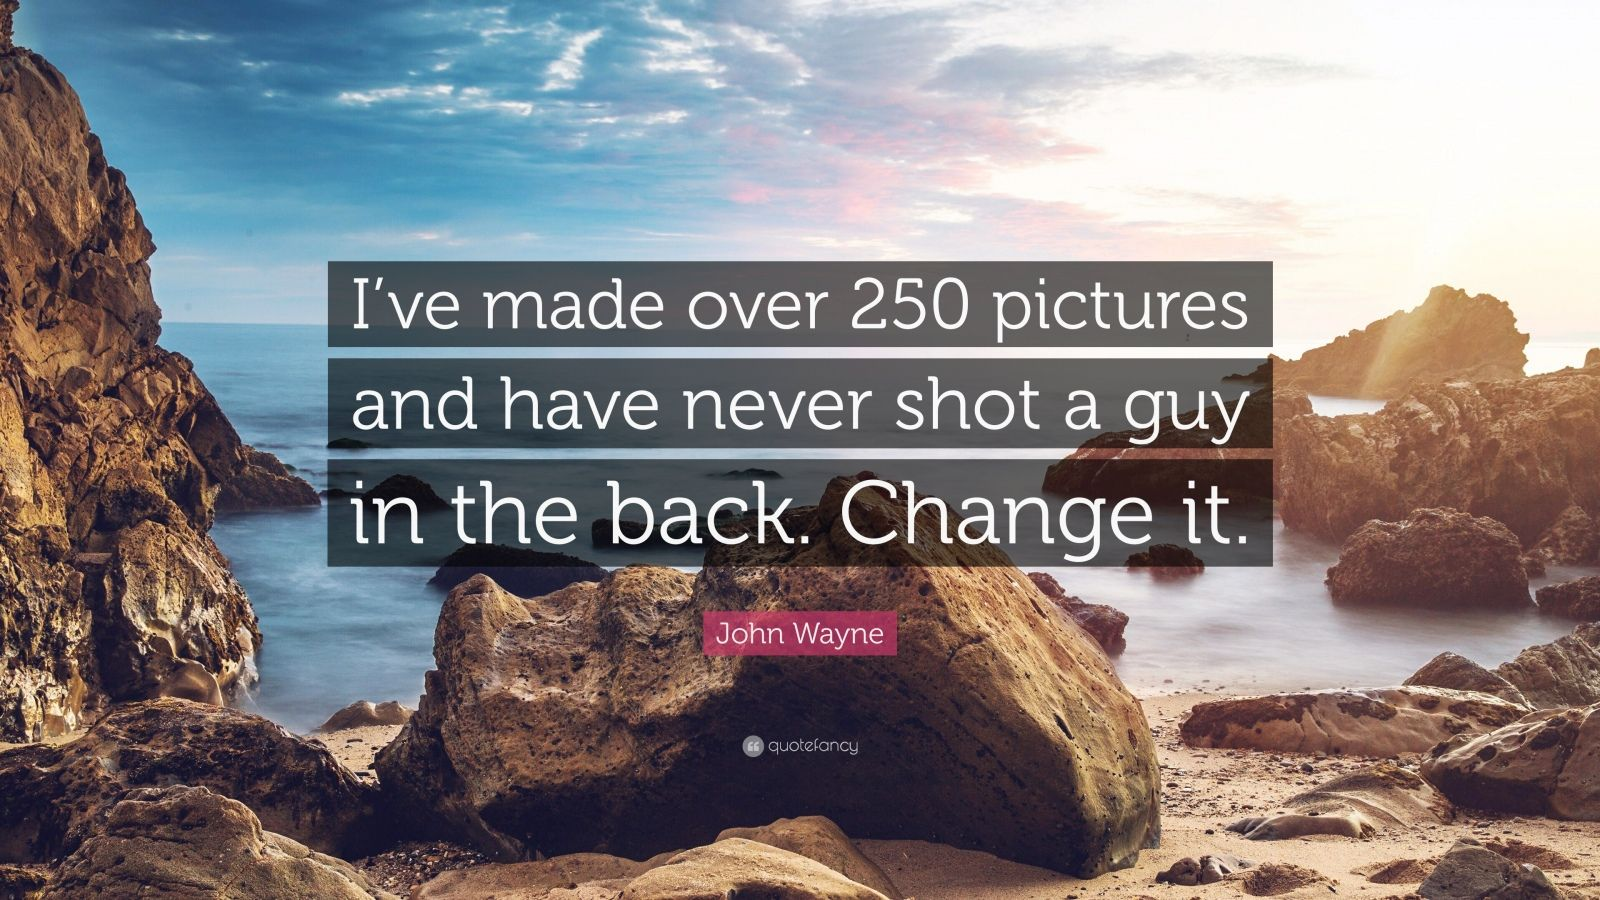 """John Wayne Quote: """"I've made over 250 pictures and have never shot a guy in the back. Change it."""""""